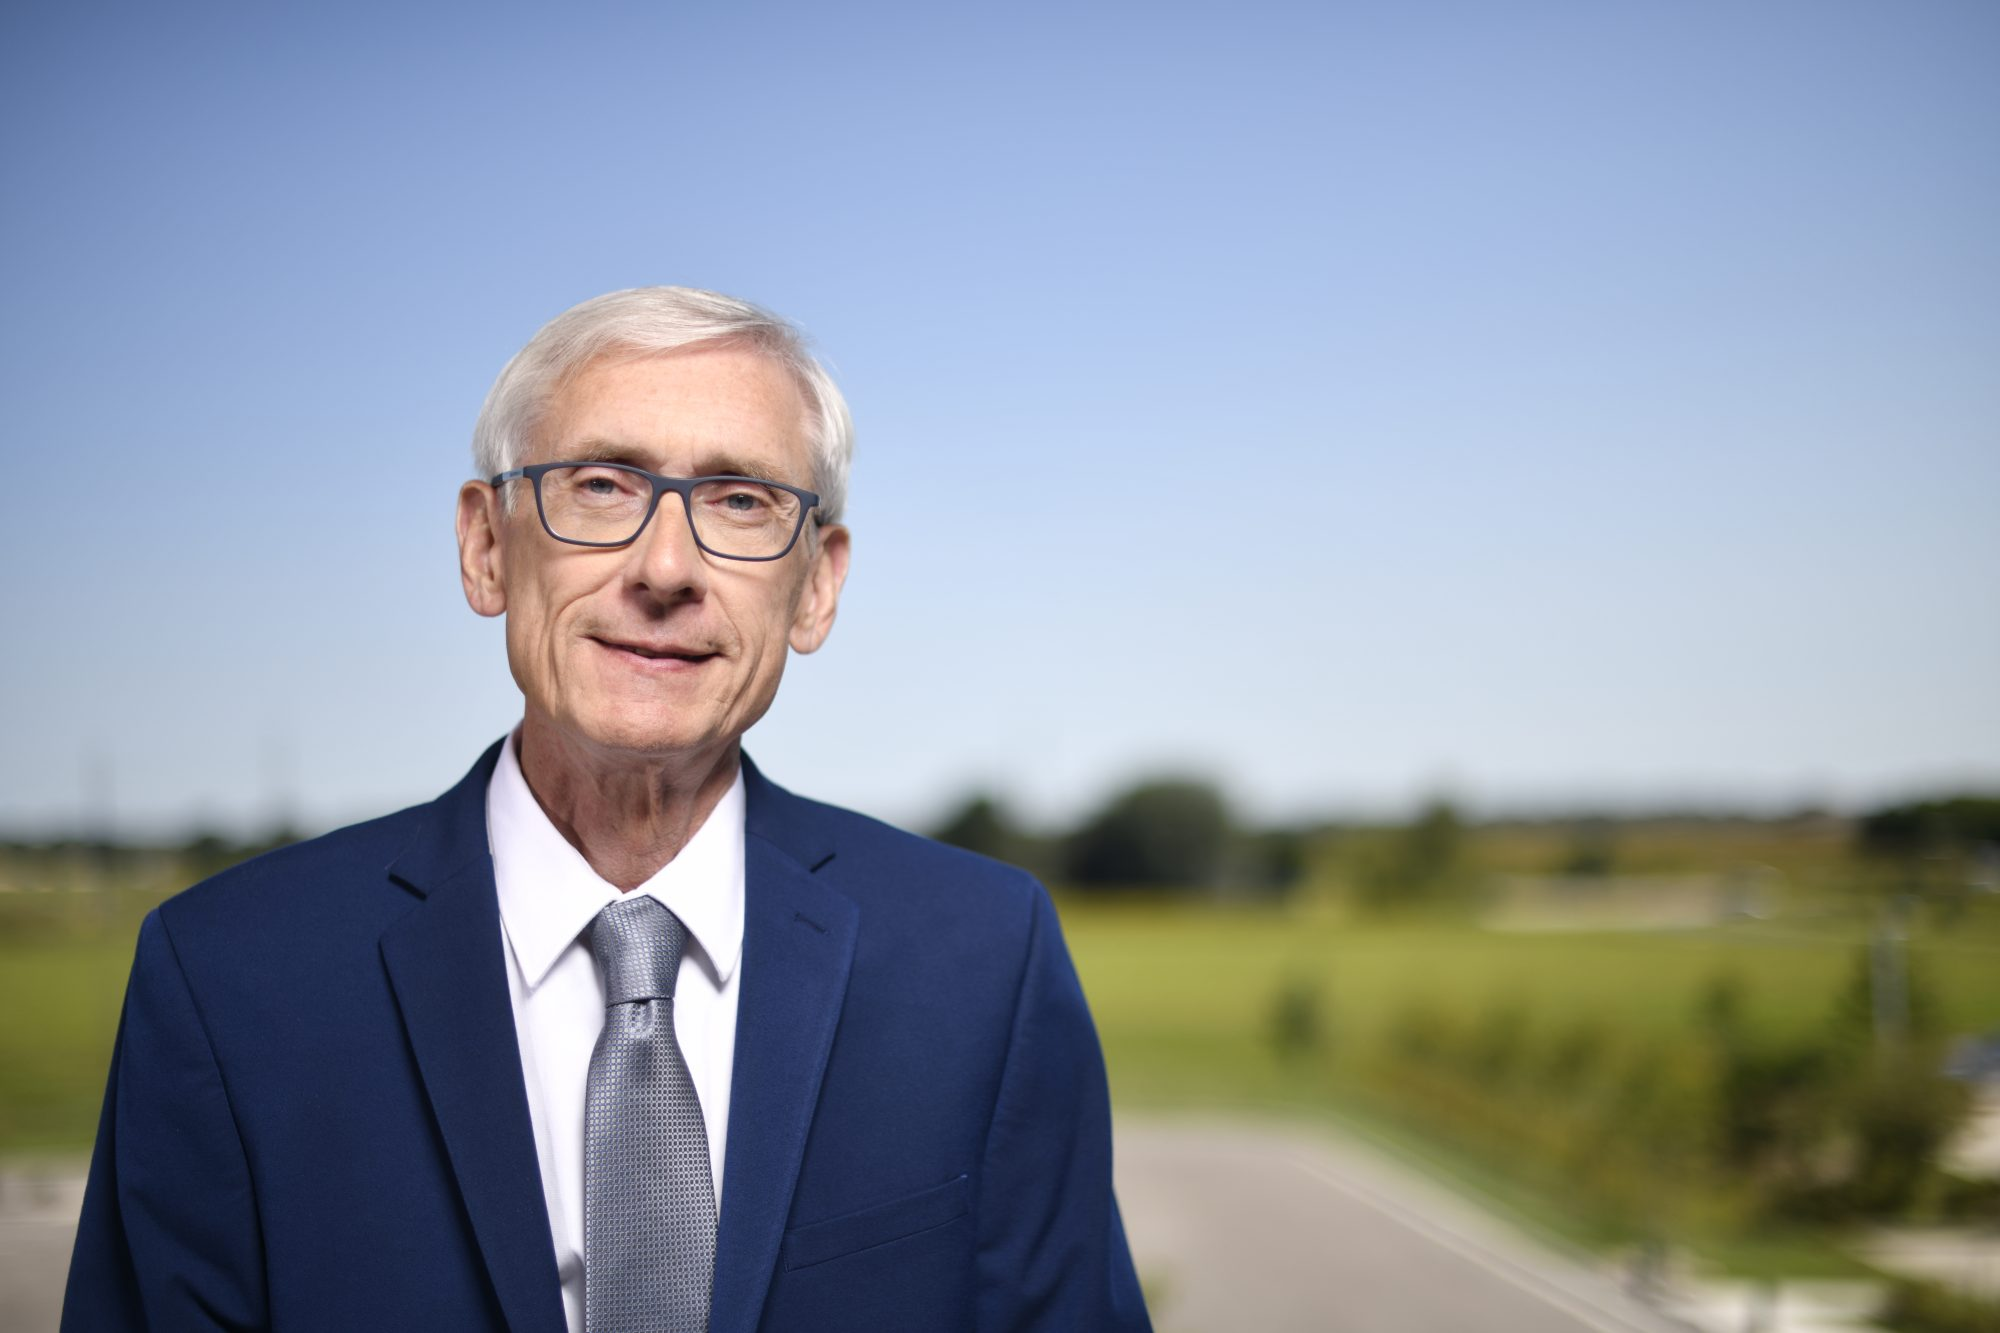 Gov. Evers Requests Federal Disaster Aid for July's Severe Storms